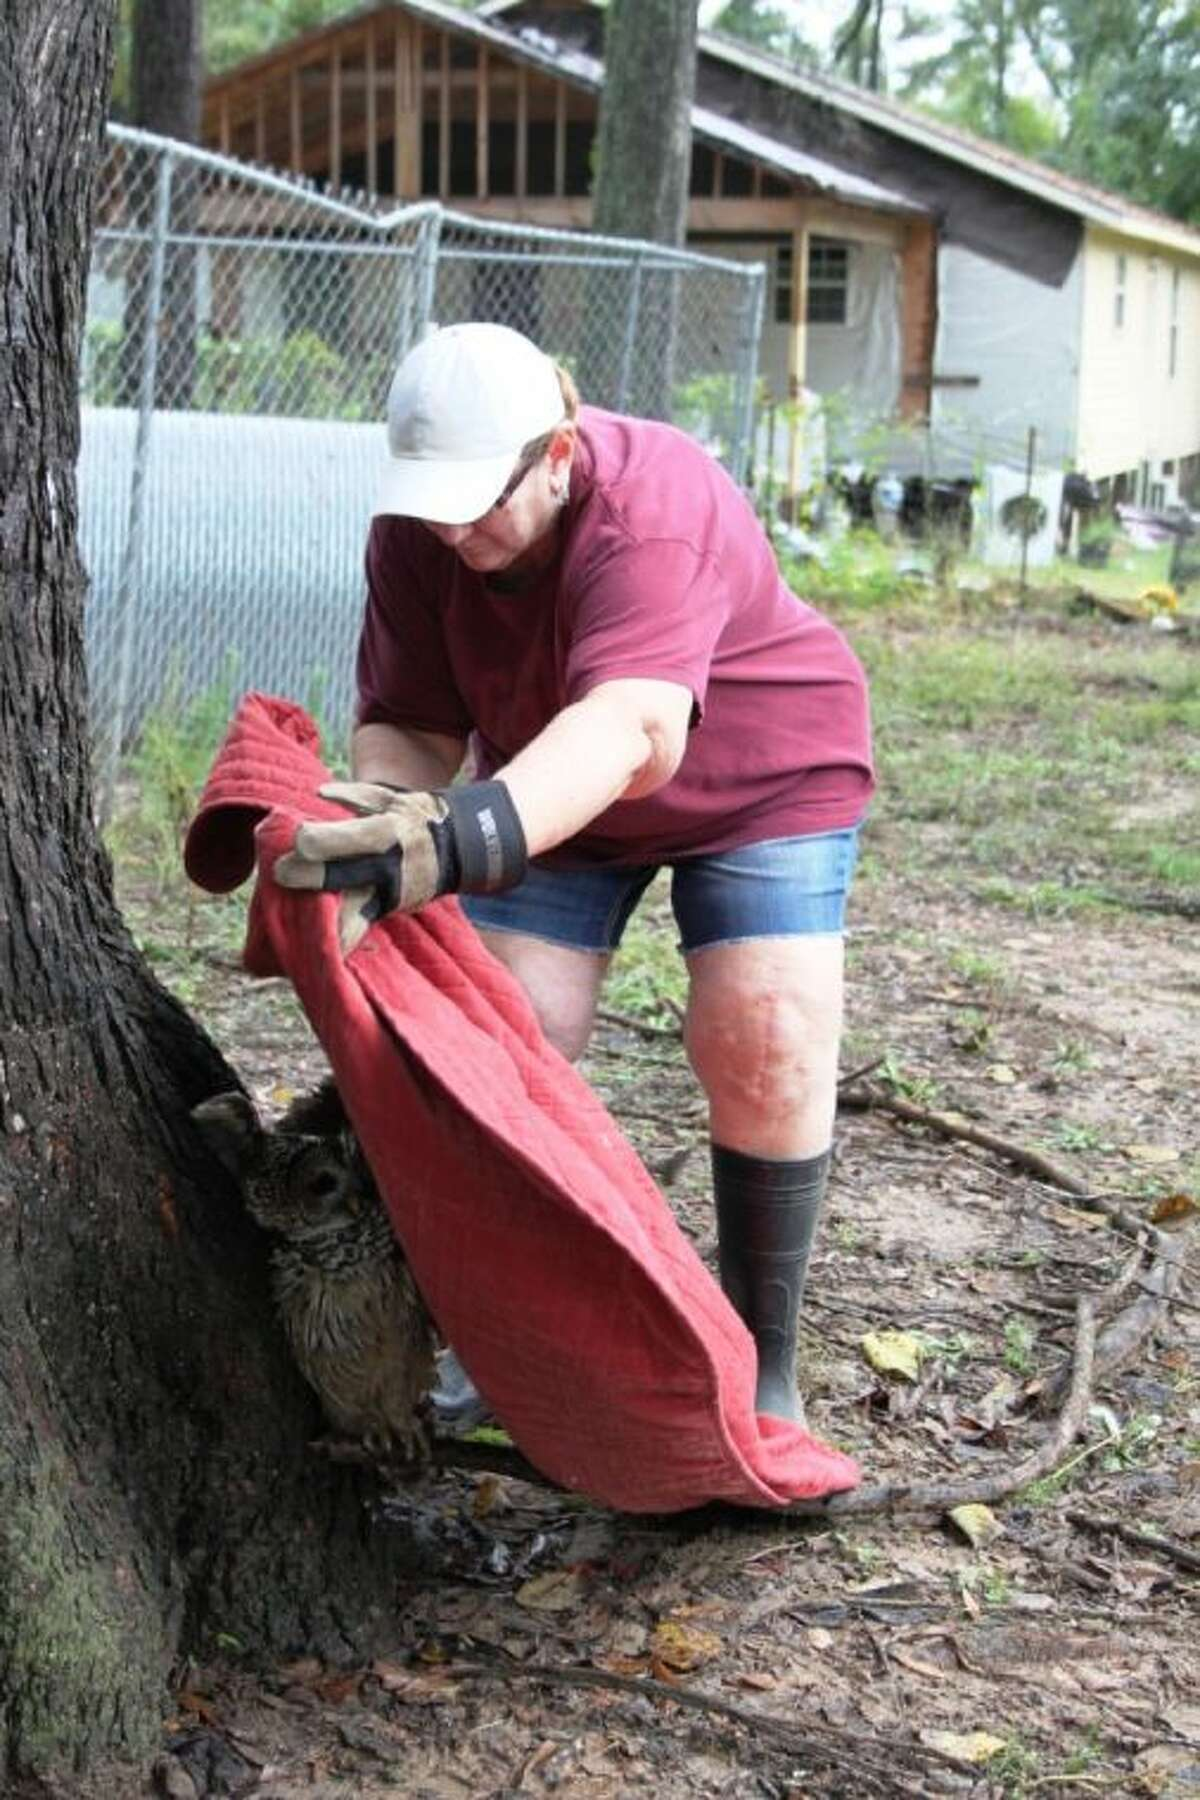 Susan Kalich of Huffman uses a blanket to subdue a barred owl that was found at the Cleveland area home of Cookie McKee on Thursday, Oct. 31. The owl appears to have a broken wing.